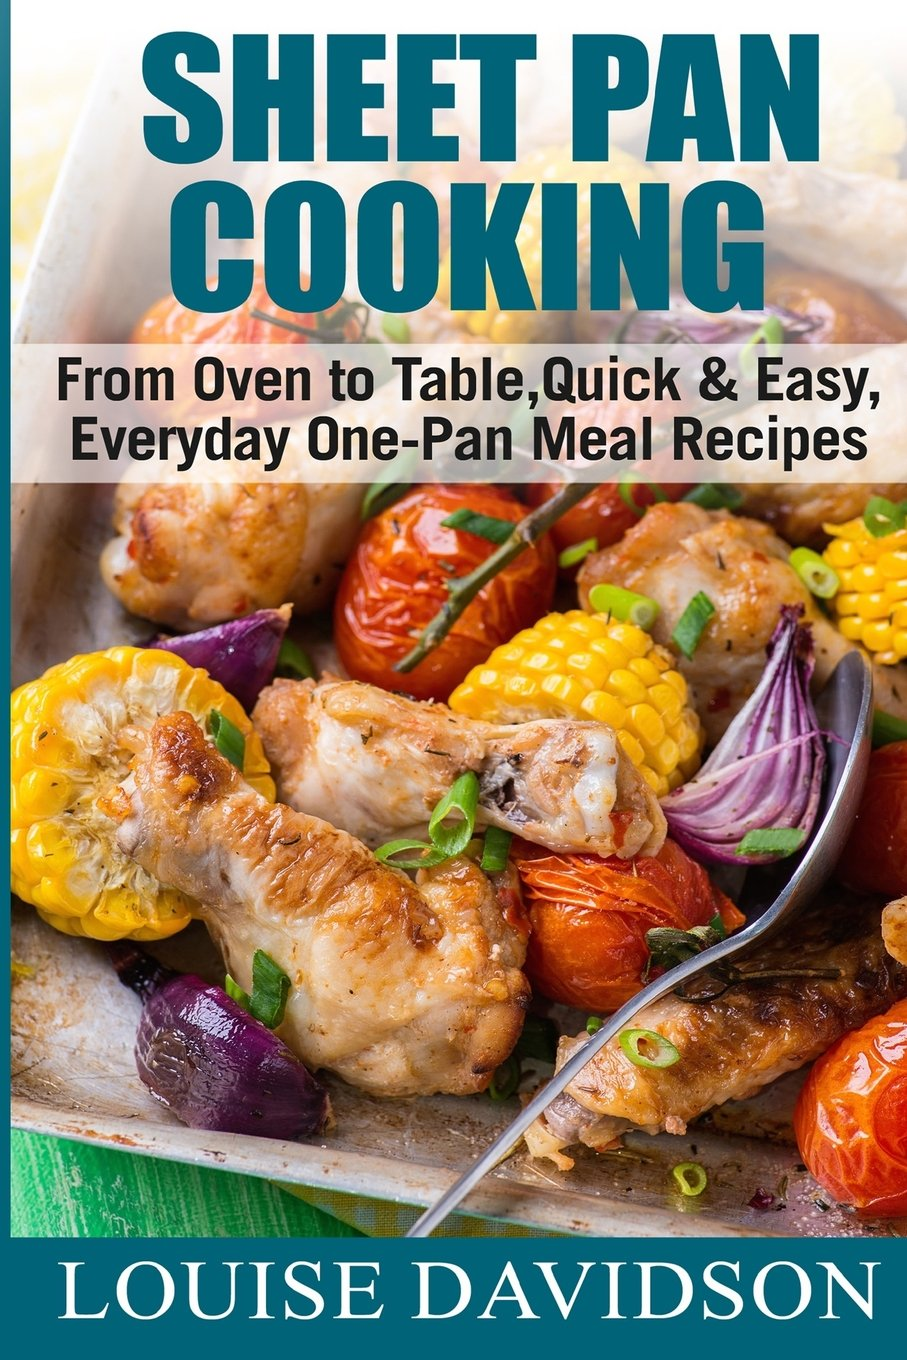 Sheet Pan Cooking  ***Color Edition***: From Oven to Table, Quick & Easy, Everyday, One-Pan Meal Recipes pdf